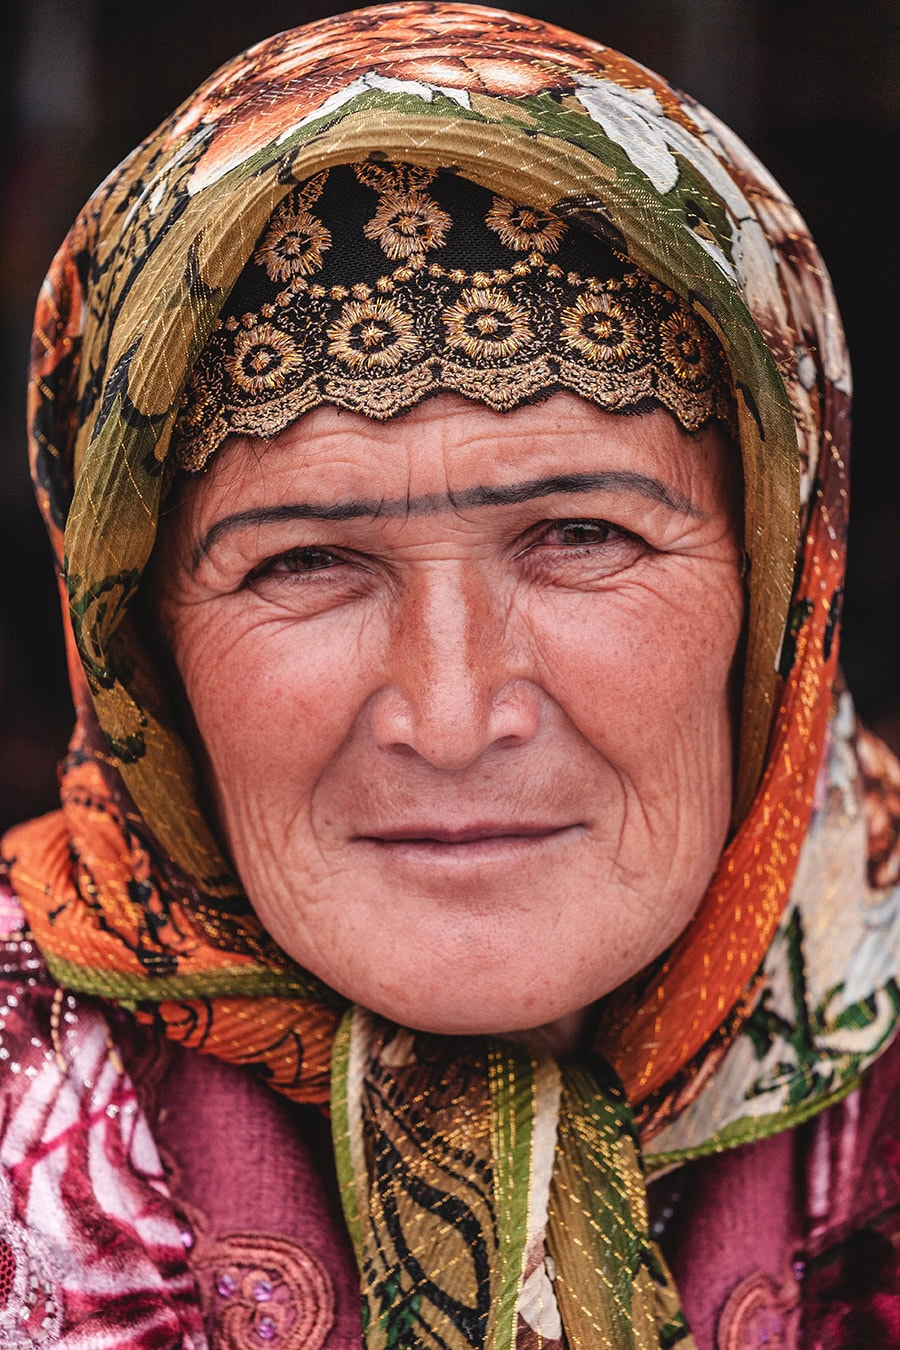 Colorful woman at the Samarkand market.